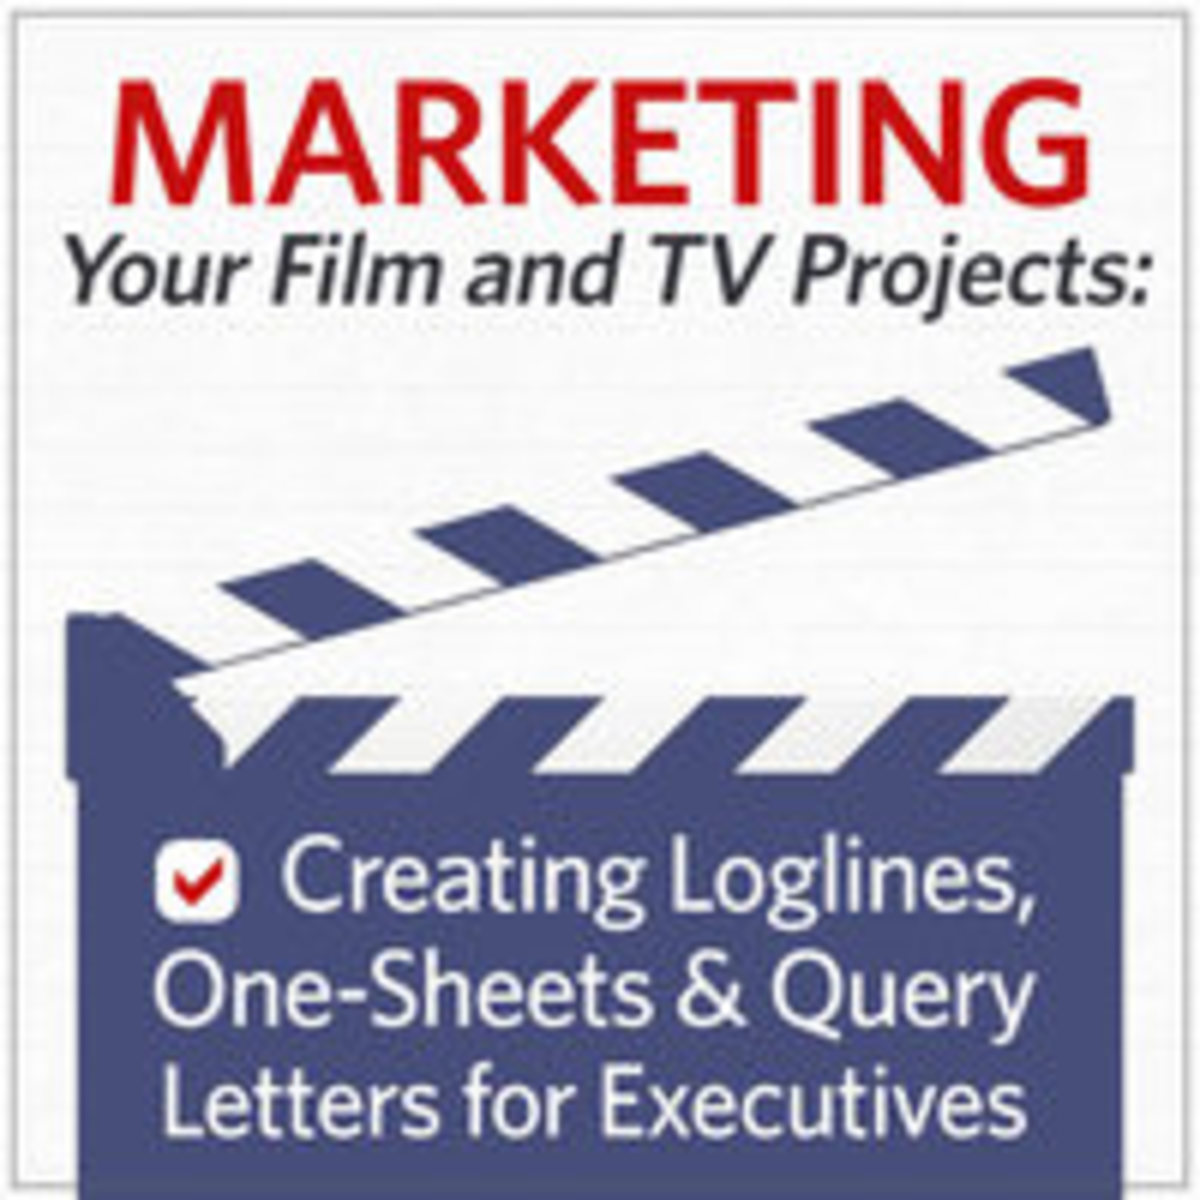 ws_marketingyourfilmandtvprojects-500_small